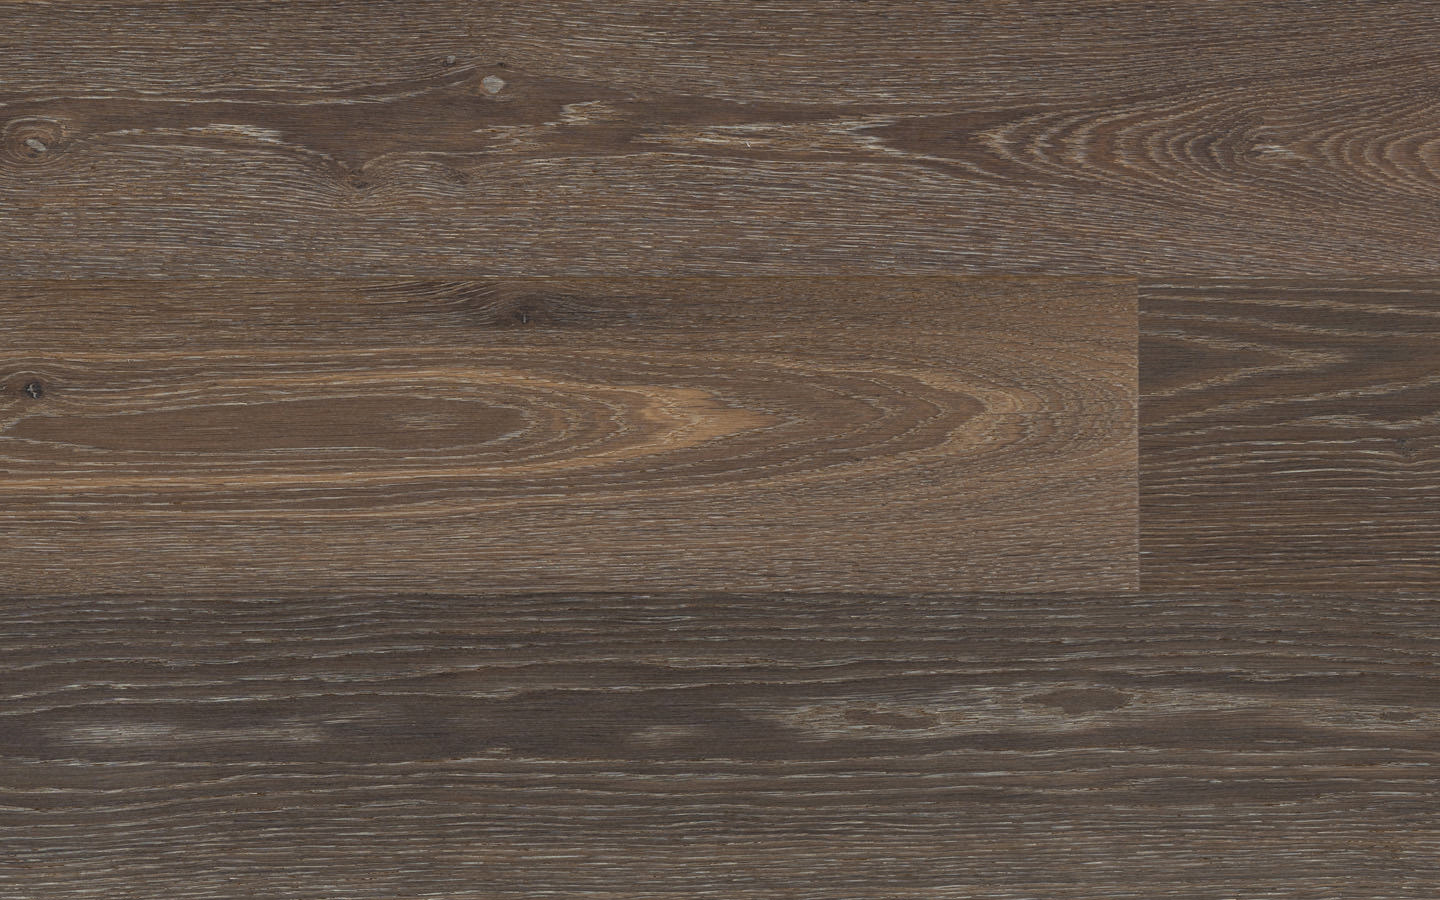 Château by adler - Oak Bretagne standard wire brushed color oiled - 19 x 180-350 x 1800-5000 mm